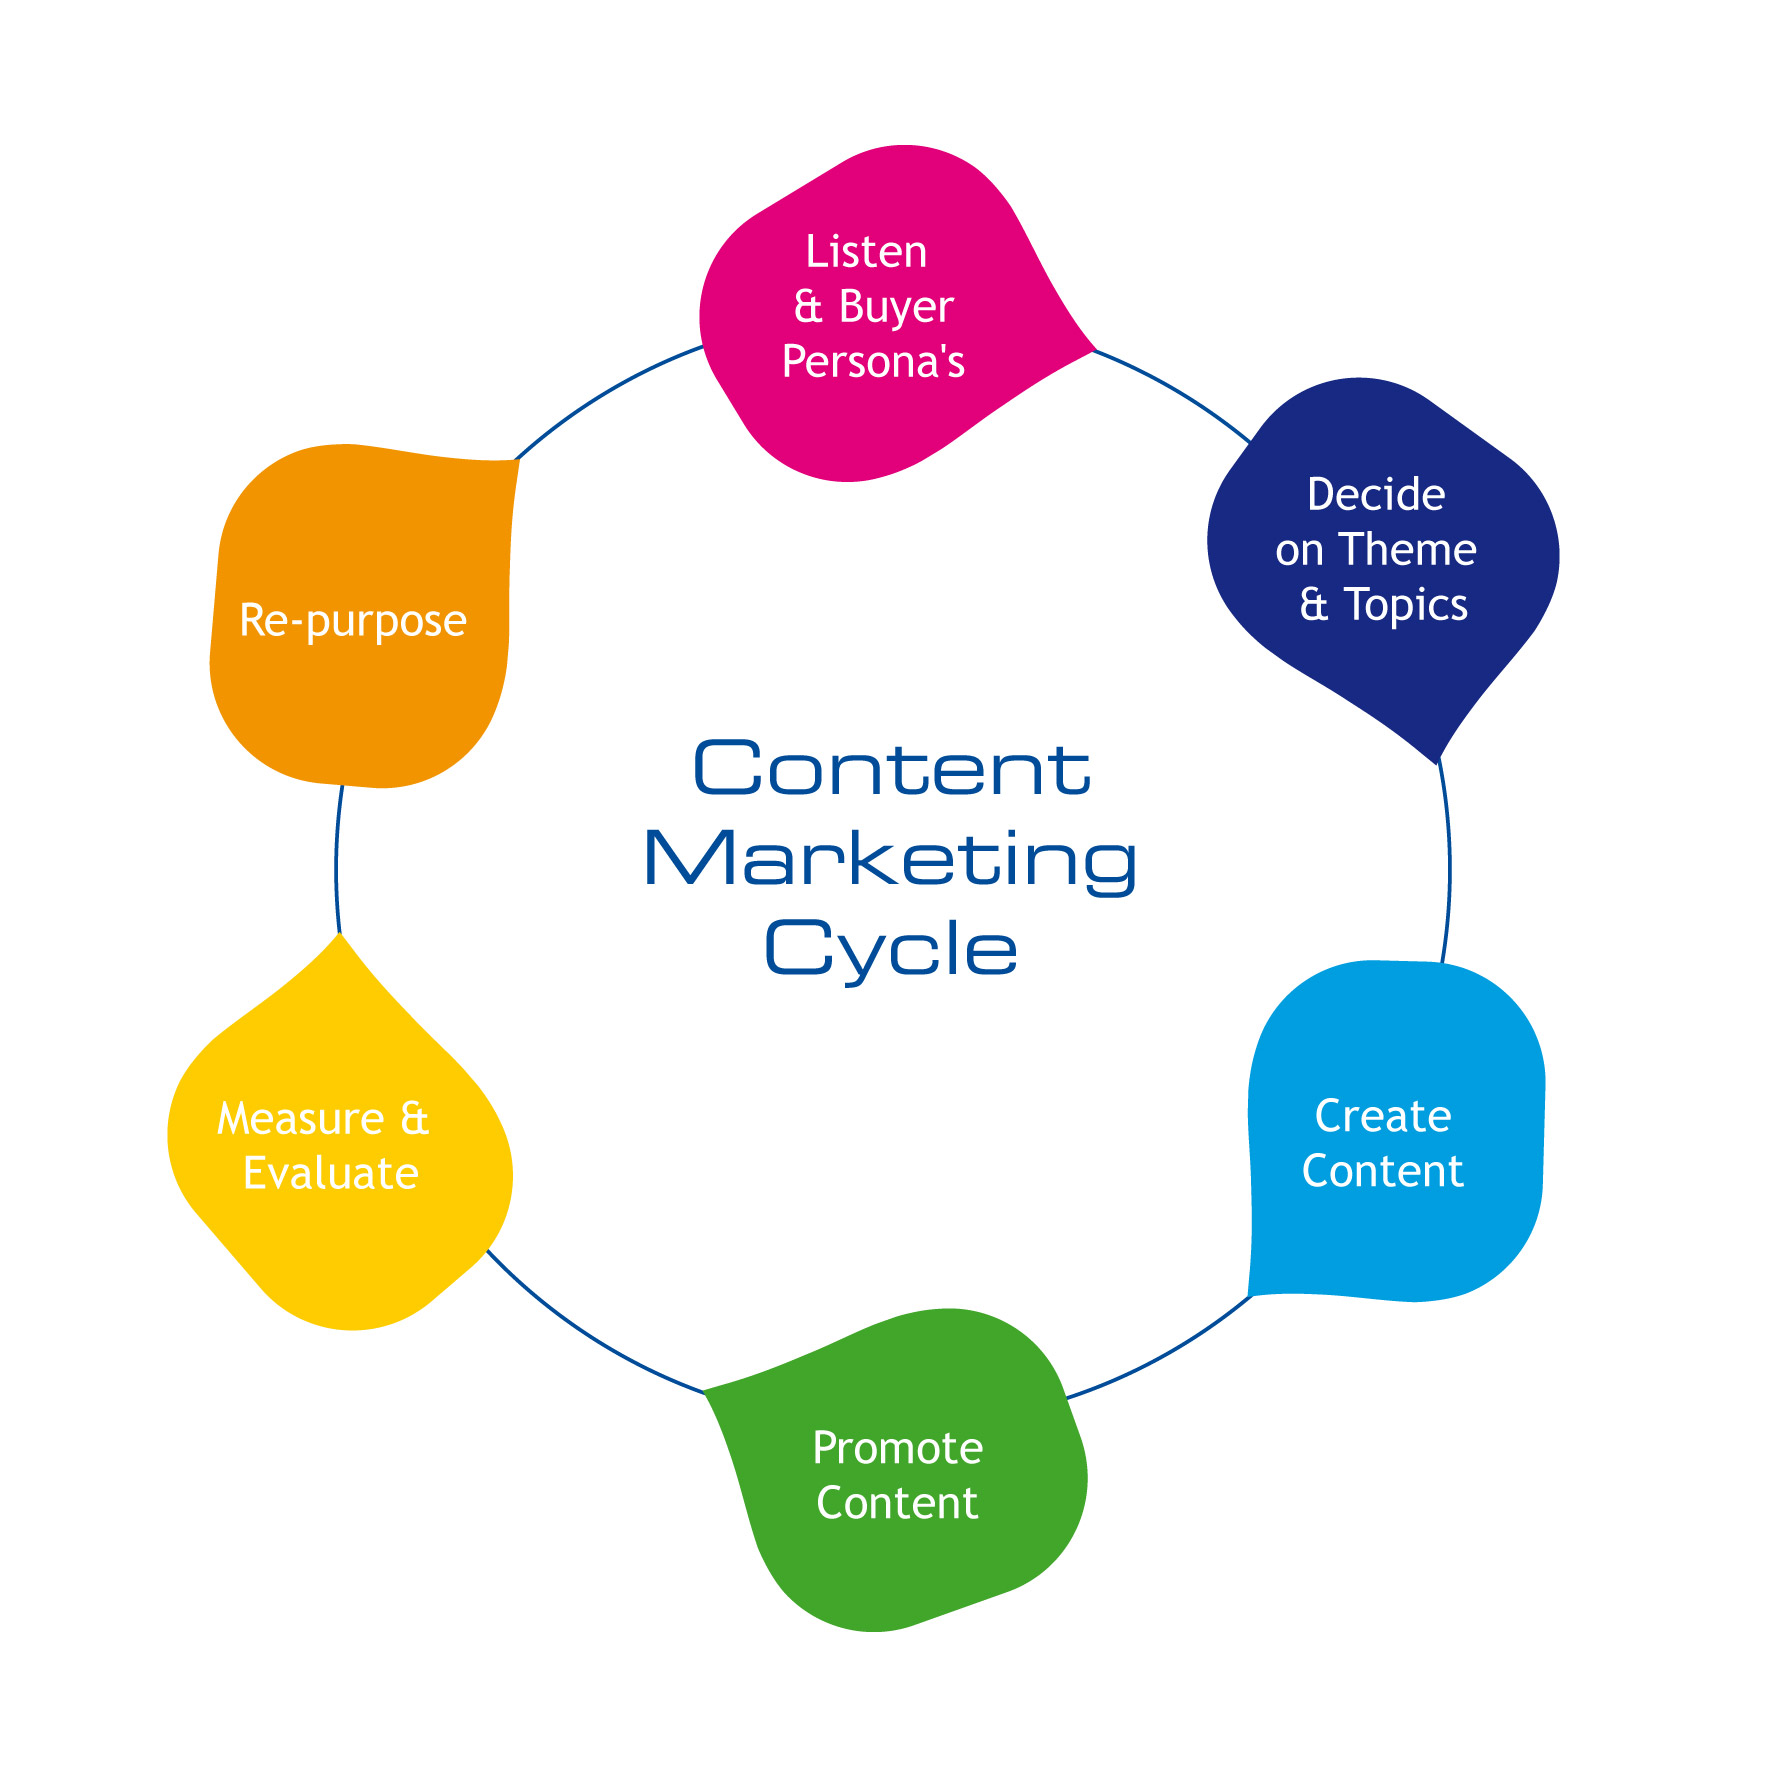 Content Marketing. What is it and why should you be doing it?